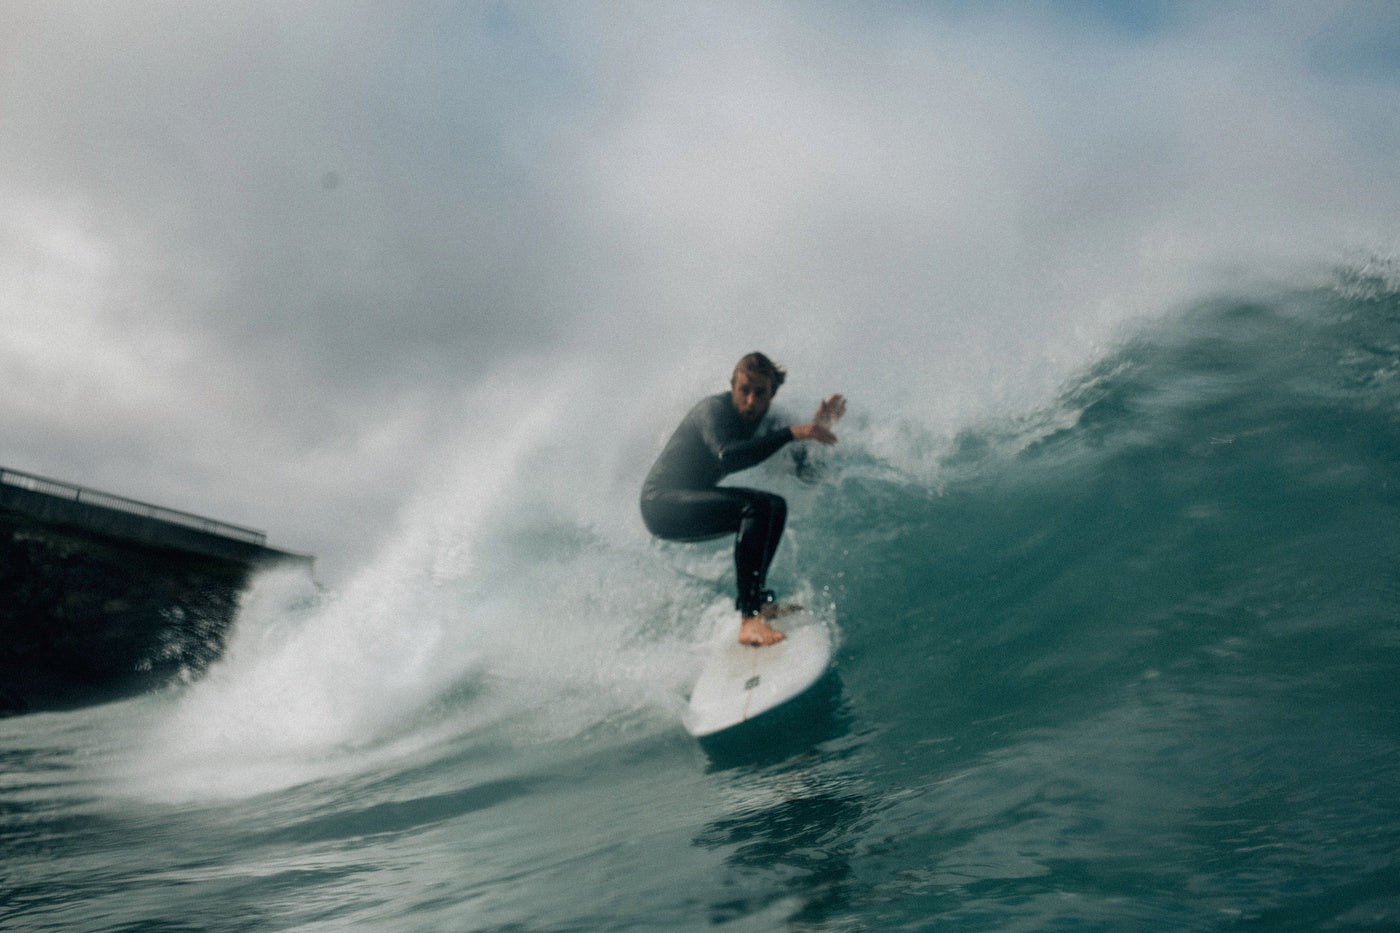 The lip of a wave crashes onto Mike but he stays firmly on his feet